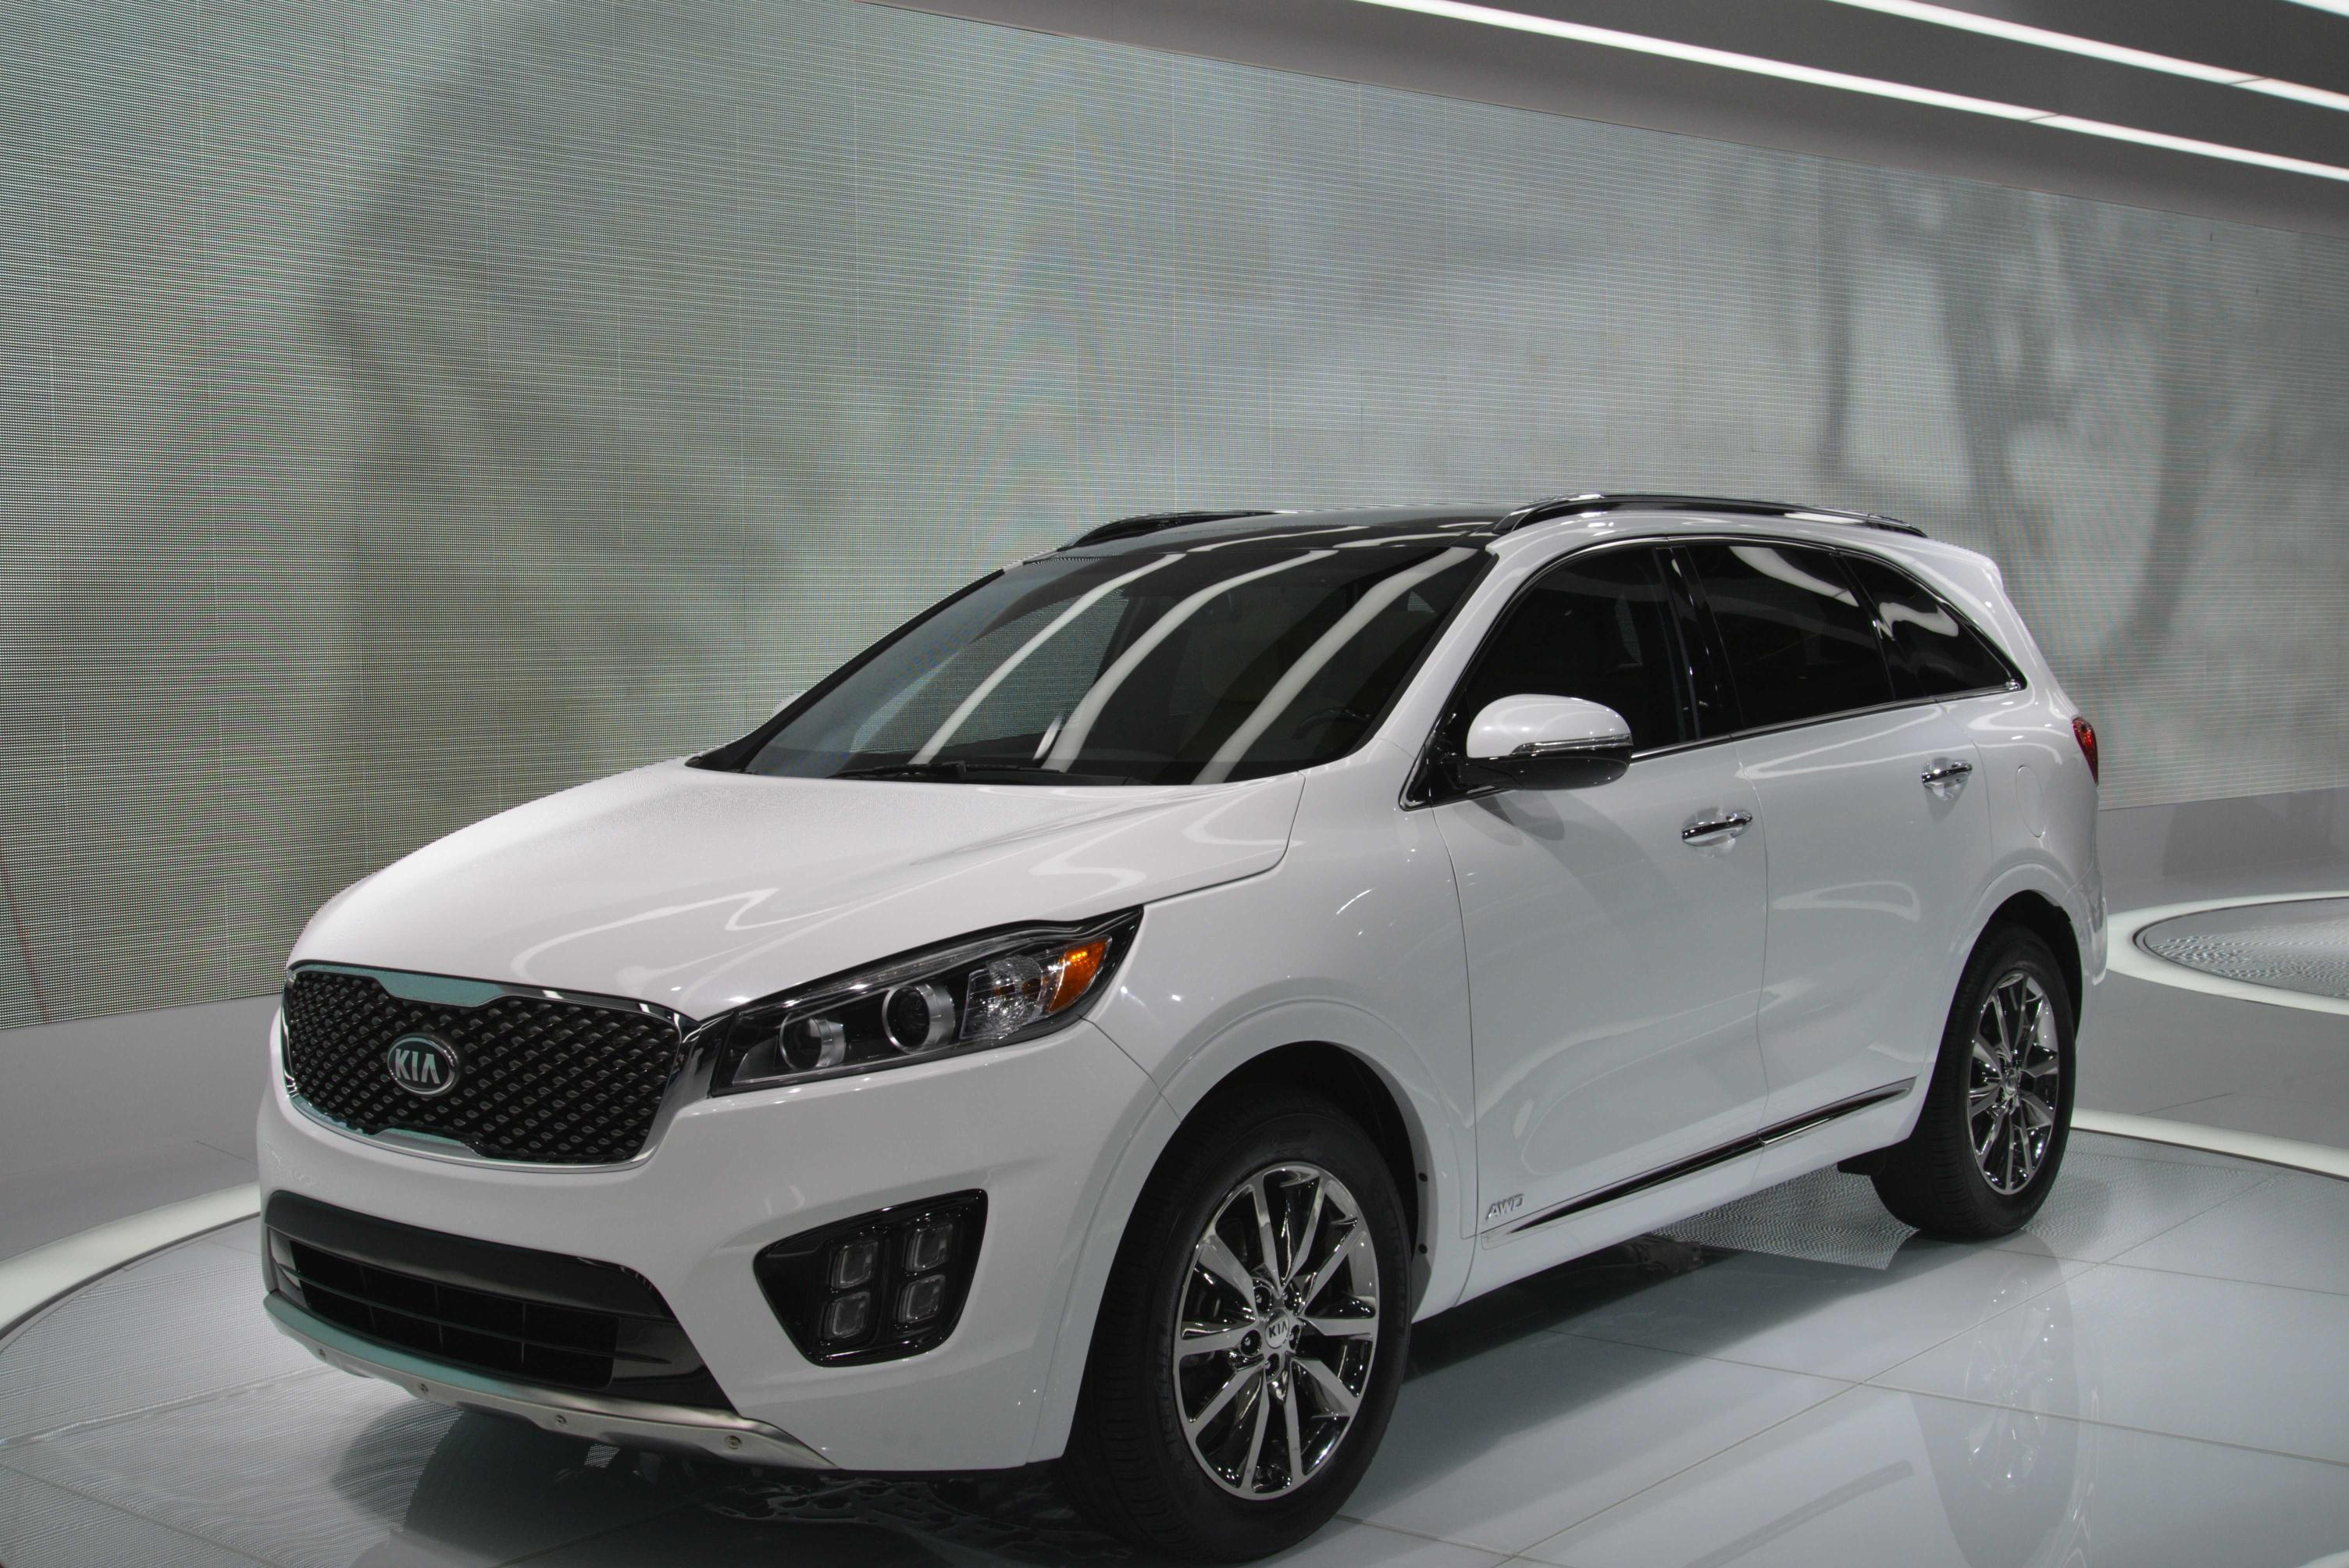 2018 kia k9. contemporary kia 2016 kia sorento at los angeles auto show to 2018 kia k9